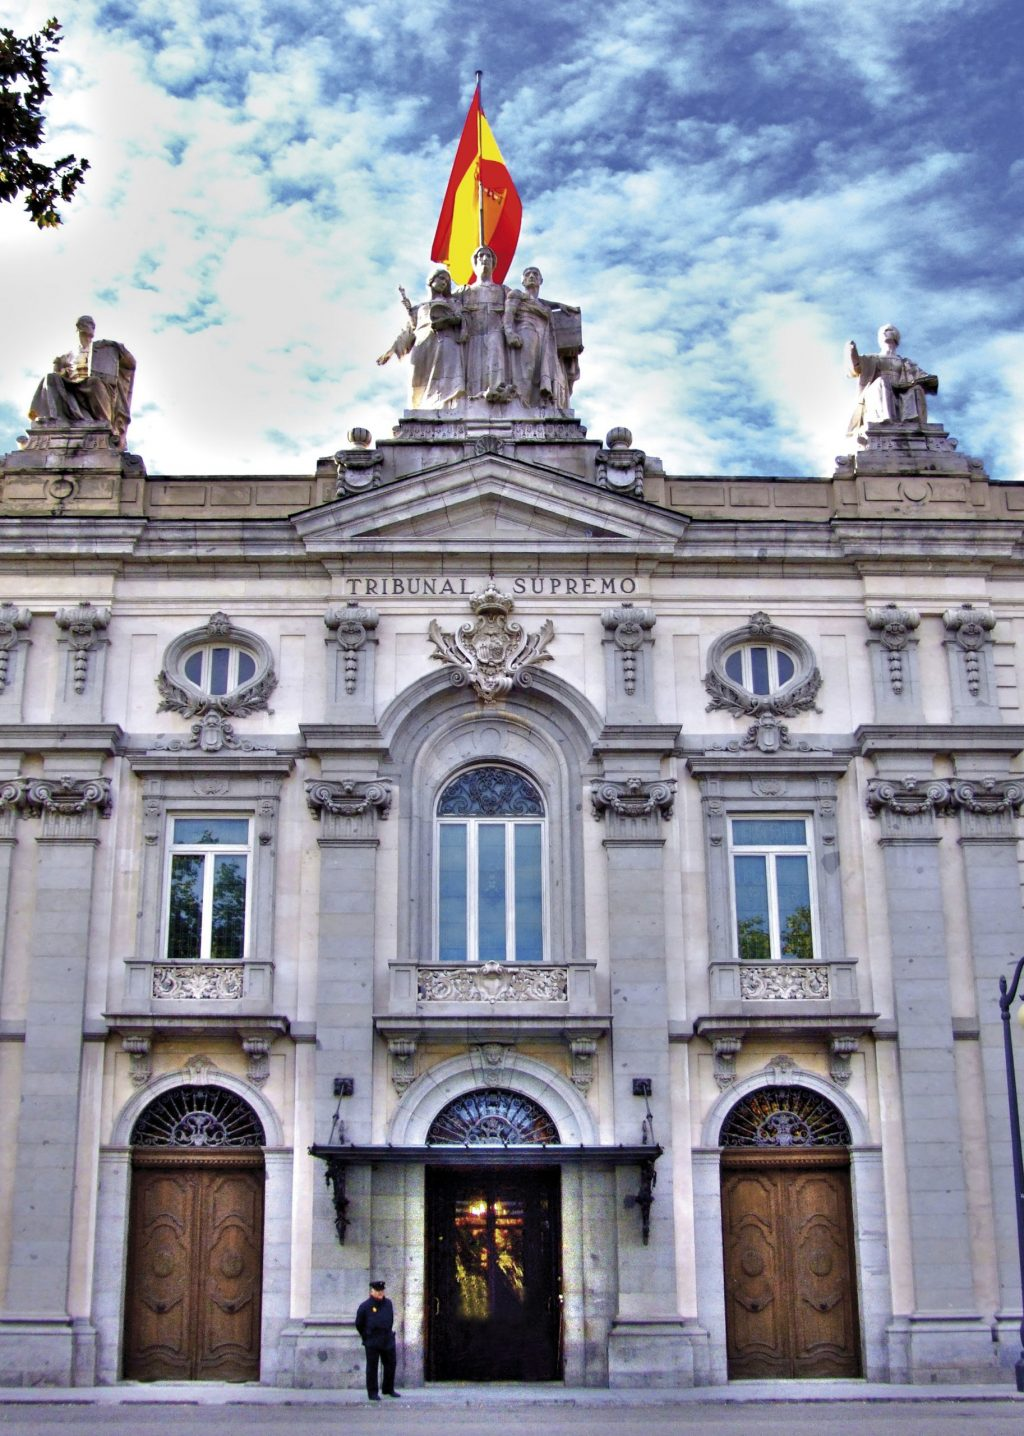 Spain's Supreme Court has decided that it is up to doctors, not nurses, to license and provide care in the field of aesthetic medicine.